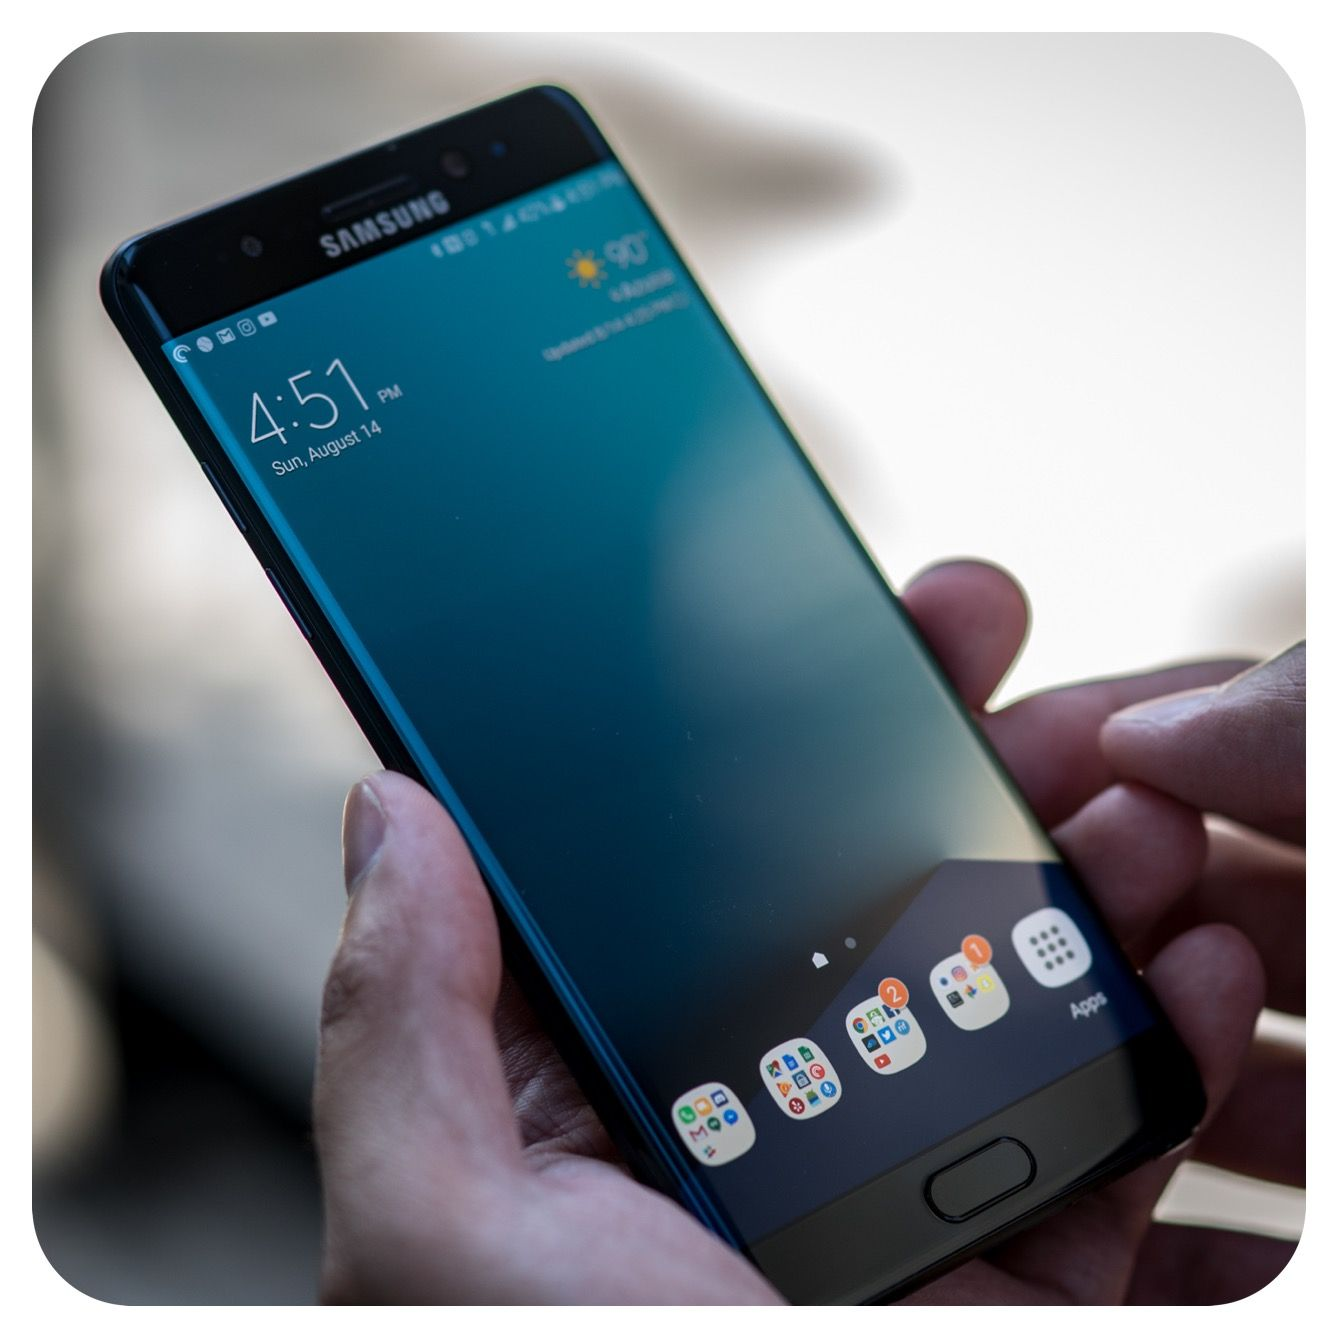 Samsung is taking a drastic step to permanently end the